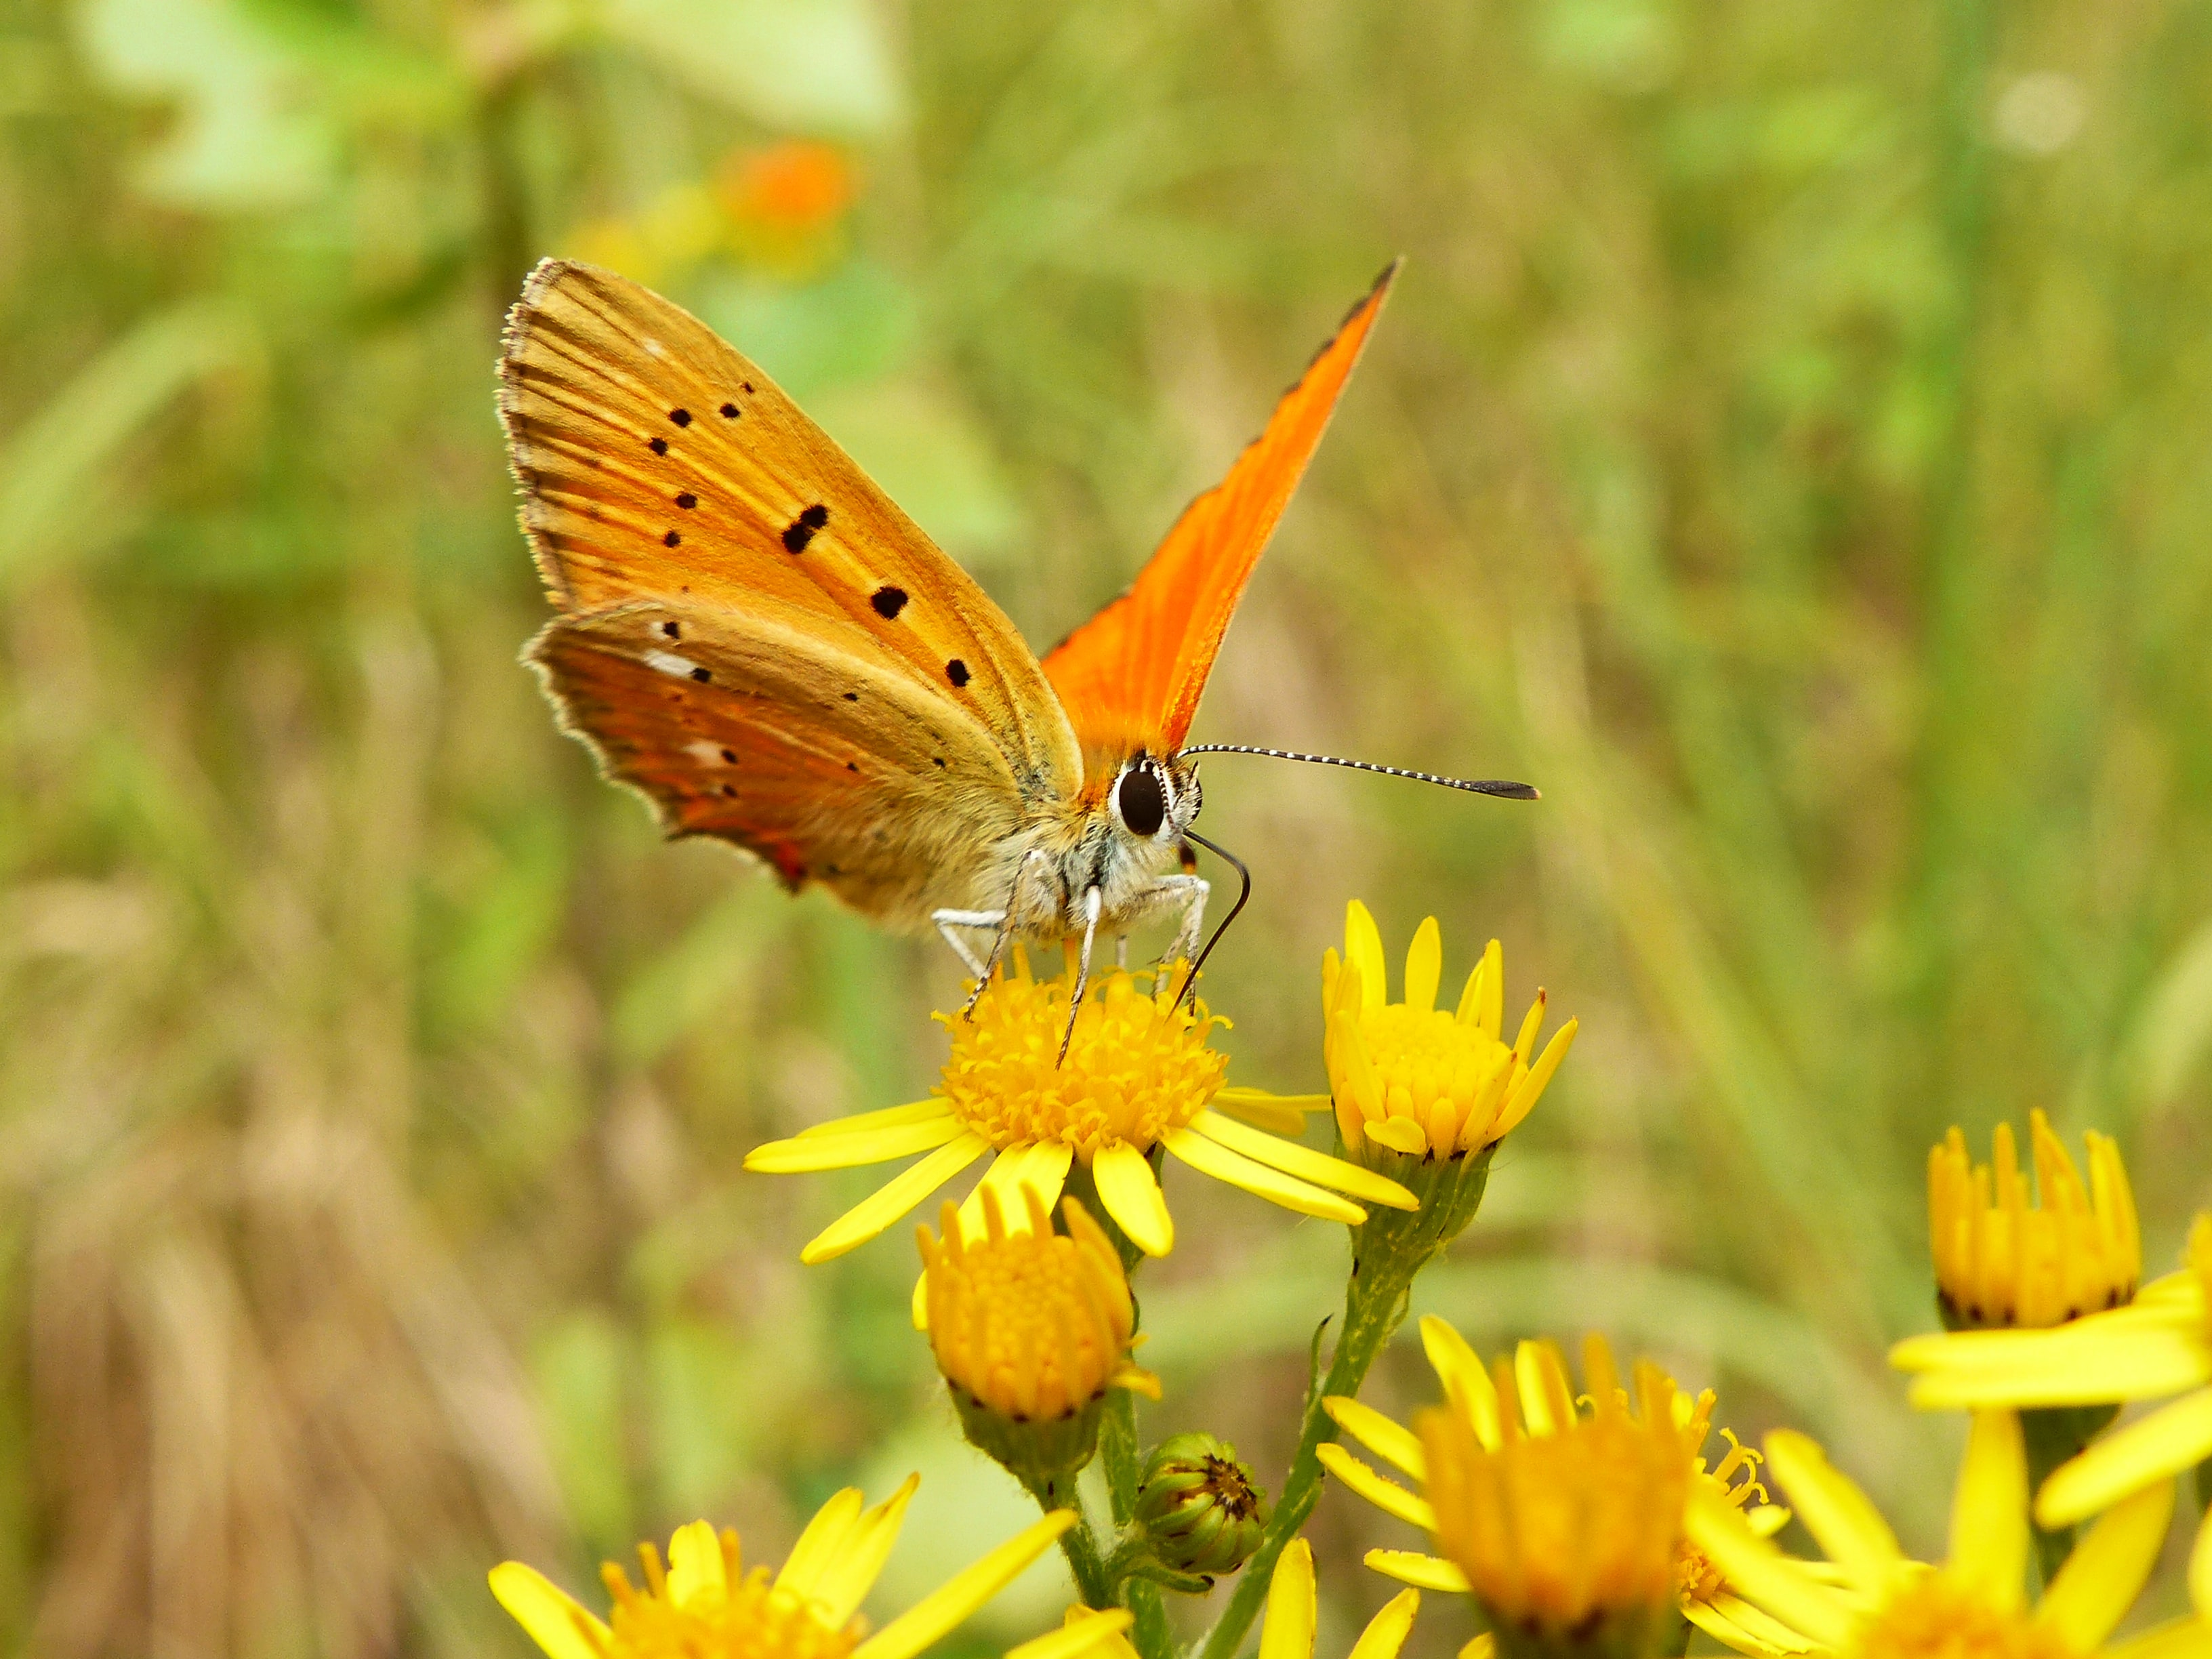 orange butterfly perched on yellow petaled flower